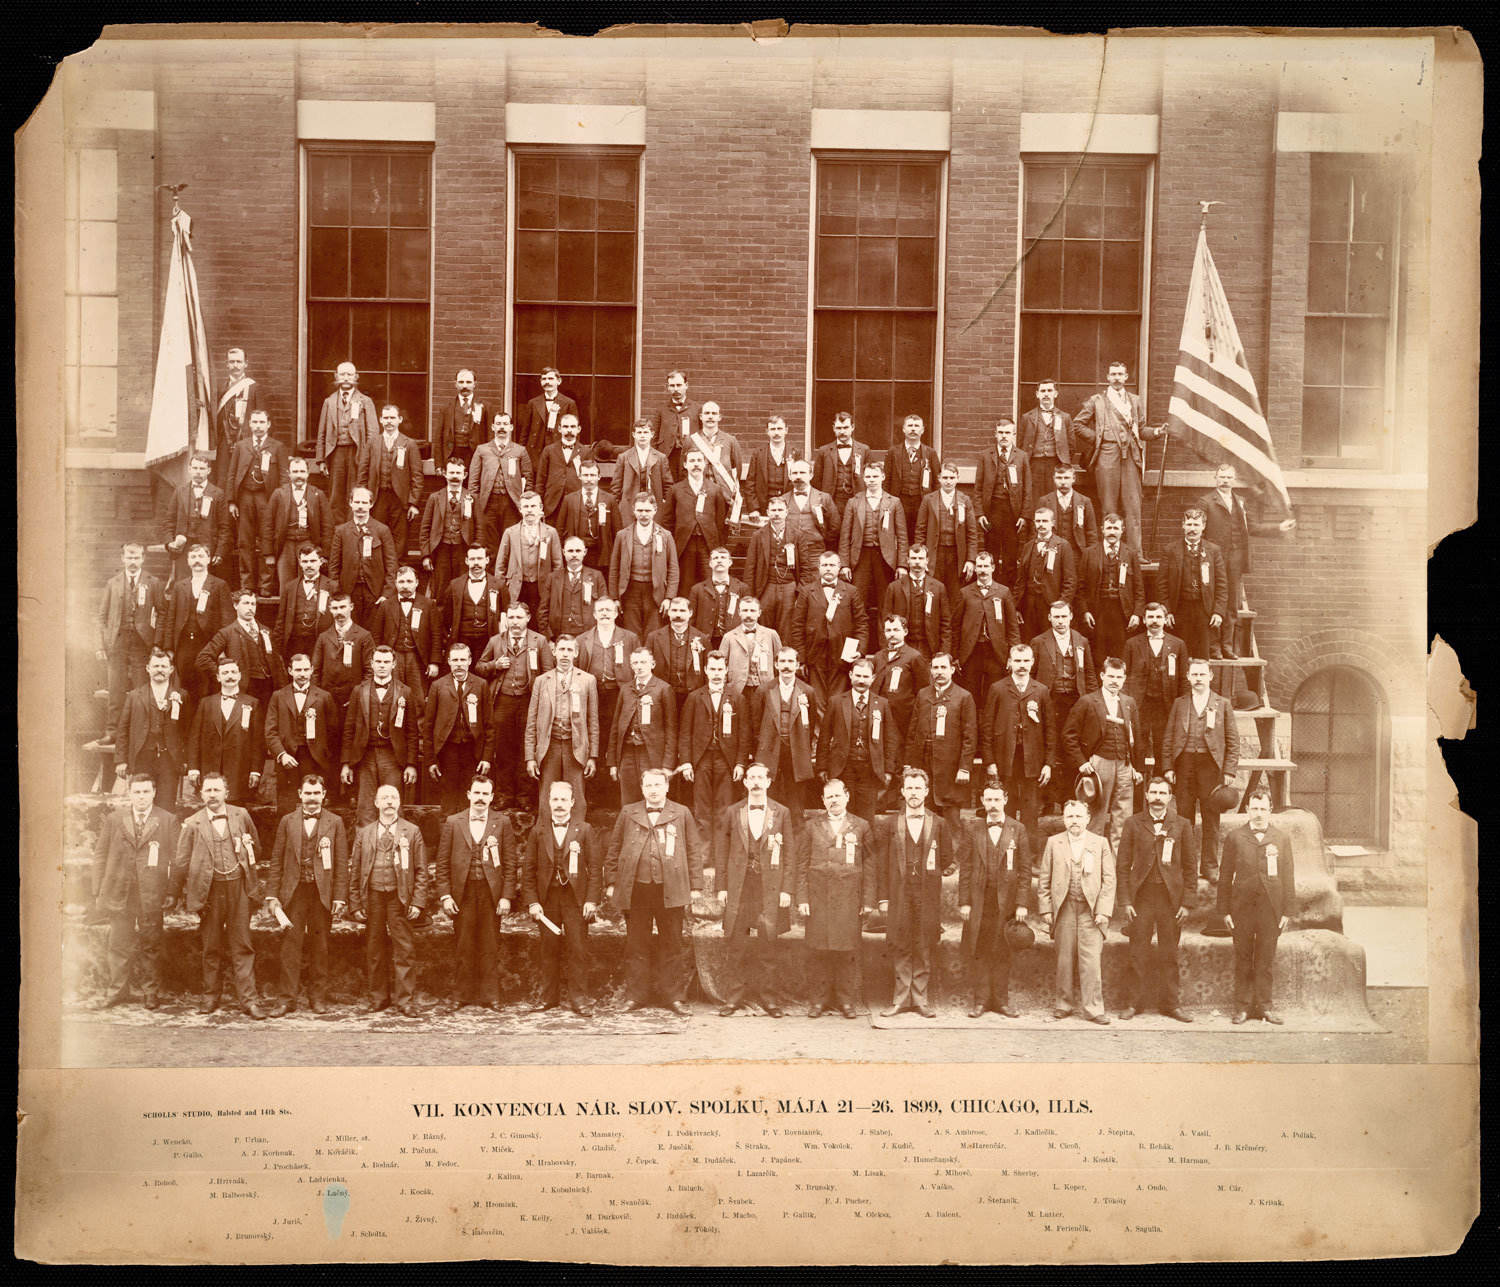 7th convention of the National Slovak Society, Scholl's Studio, Participants in the 7th convention of the National Slovak Society, held on May 21-26, 1899 in Chicago, Illinois. Included are portraits of the founding and leading members of the Society (established in 1890) such P.V. Rovnianek, A.S. Ambrose, A. Mamatey, M. Feriencik, I. Podkrivacky and others. The convention coinicided with a conference of a number of Slavic organizations held in Chicago on May 21-28, 1899 in which the NSS participated as well to promote the concept of unity among the Slavic peoples in America and also to build relationships with other Slavic nationalities, namely the Croats and Czechs., U Media Archive  Immigration History Research Center, In Copyright